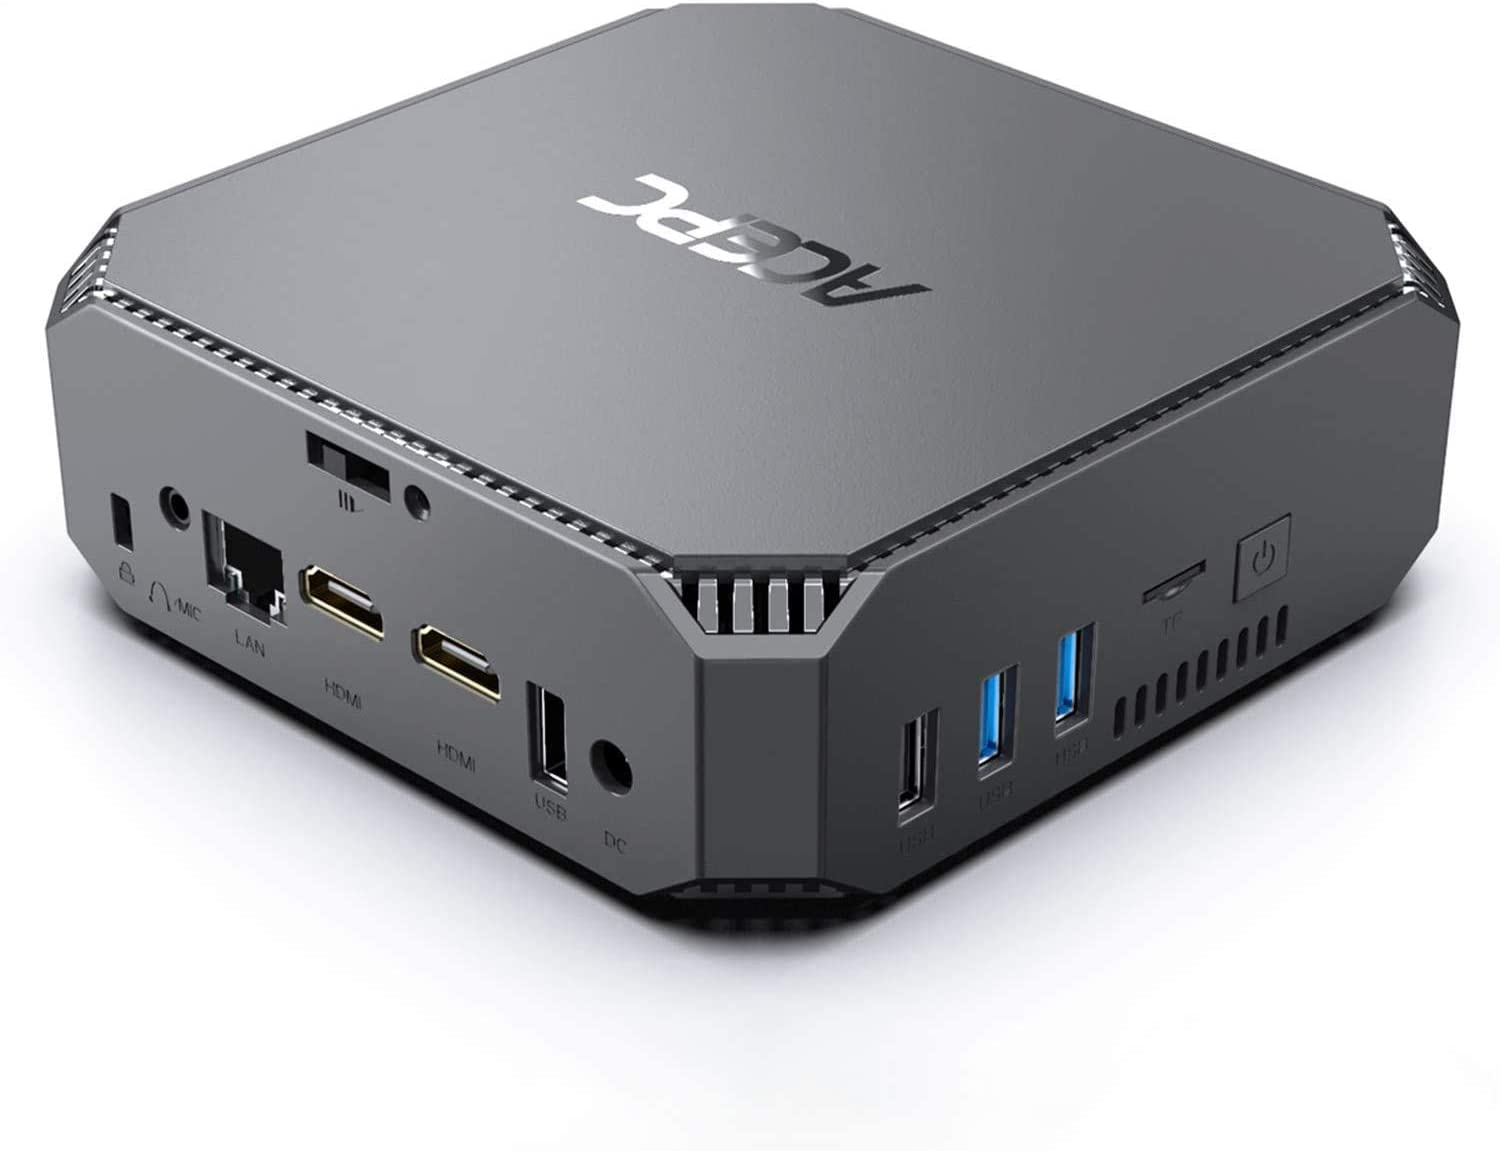 Mini PC, Windows 10 Pro 8GB DDR3 256GB SSD, Procesador Intel Celeron J3455 (hasta 2.3GHz) Mini computadora de 4 núcleos, Pantalla Dual 4K HD, WiFi de Banda Dual 2.4G / 5G, Gigabit Ethernet, BT 4.2